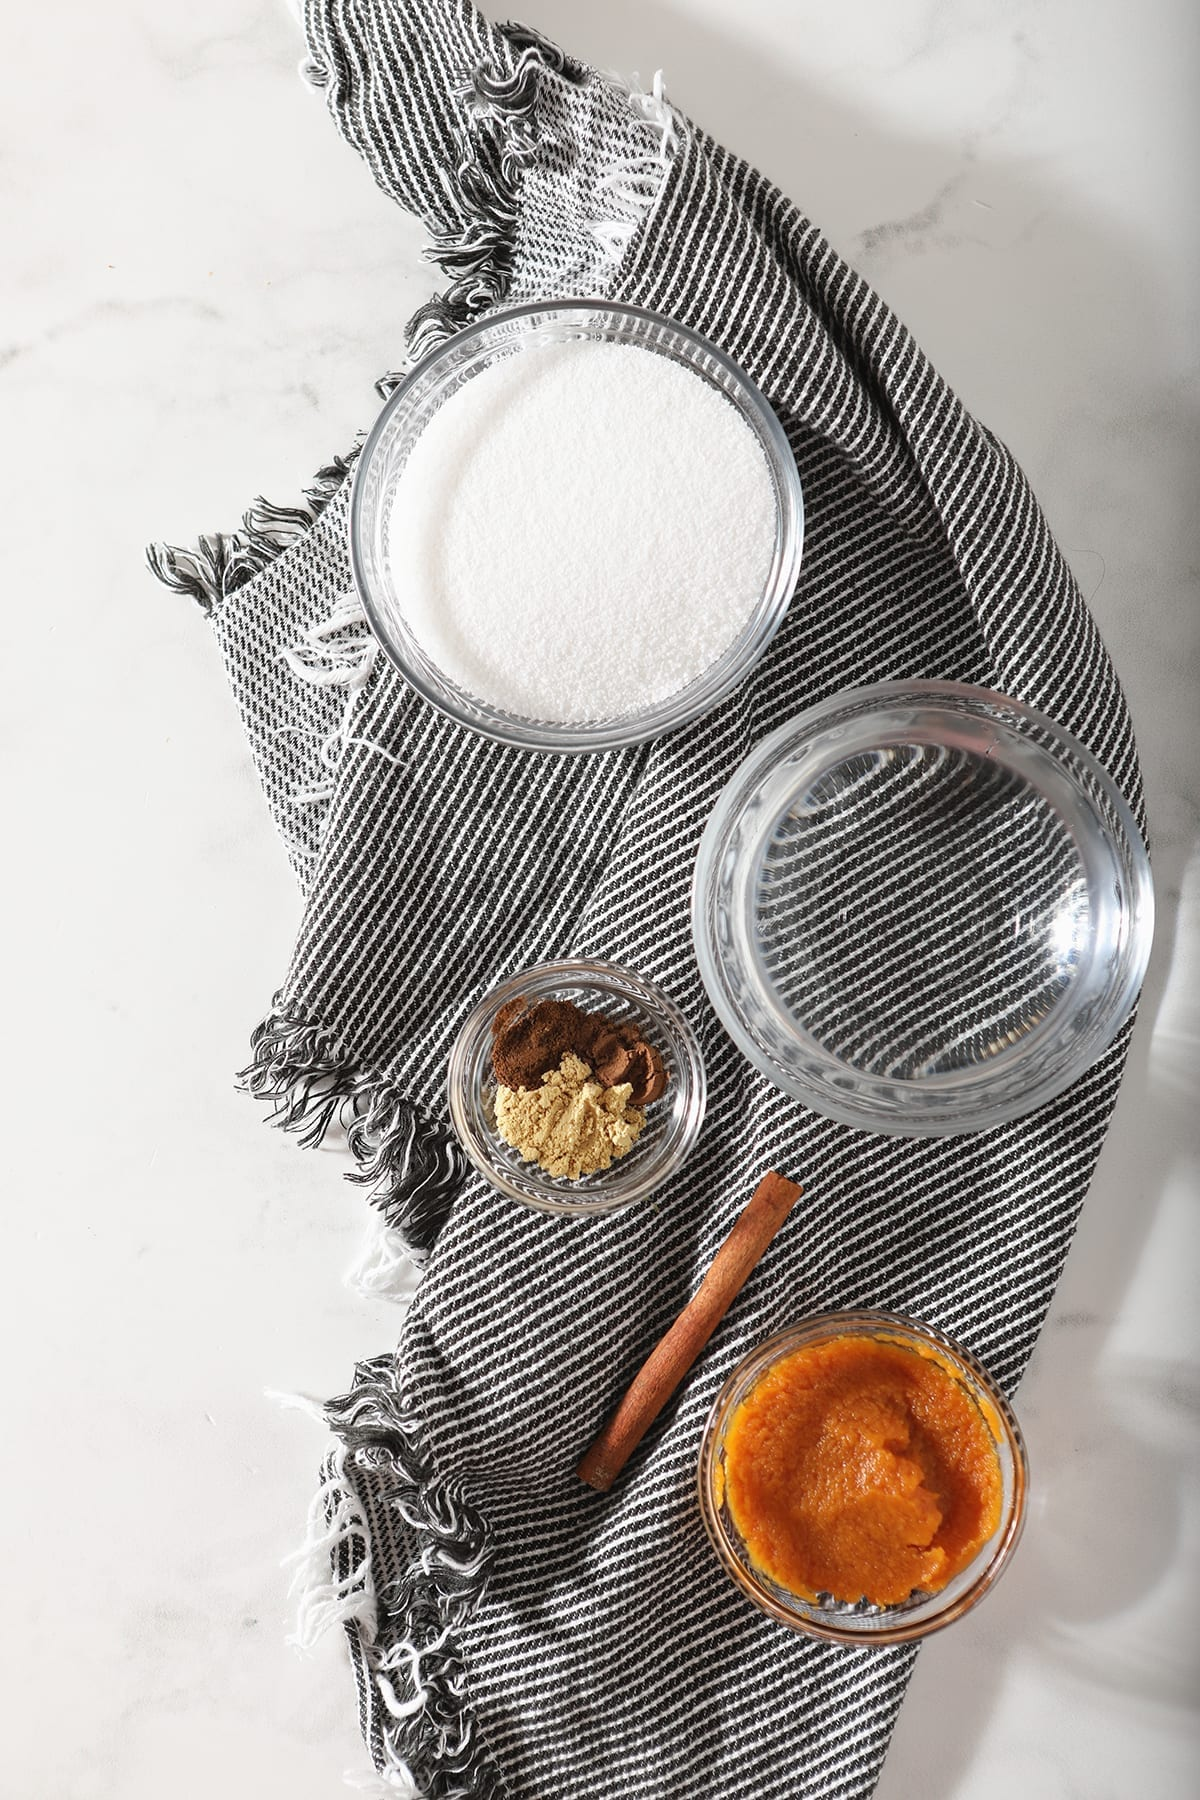 Granulated sugar, water, pumpkin pure and spices sit on a gray striped towel on marble